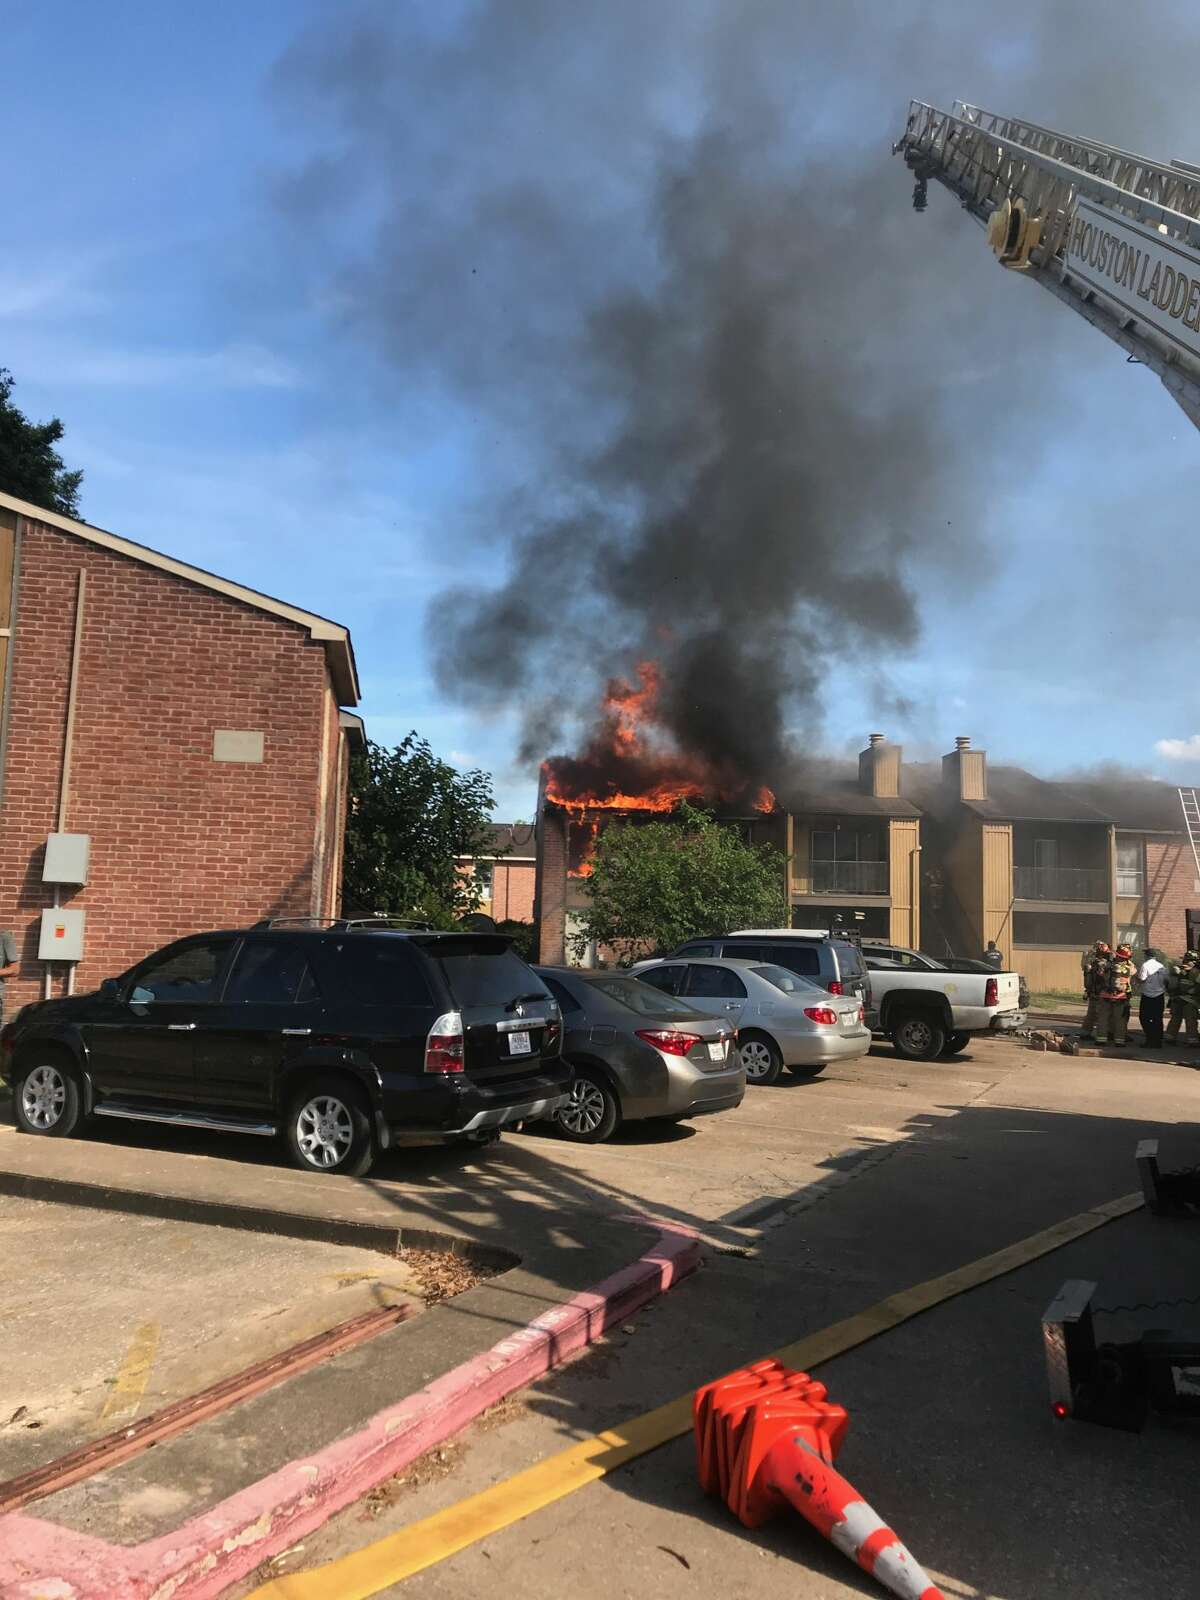 Ten families were displaced Thursday following an apartment fire in the 5800 block of North Houston Rosslyn Road, authorities said.